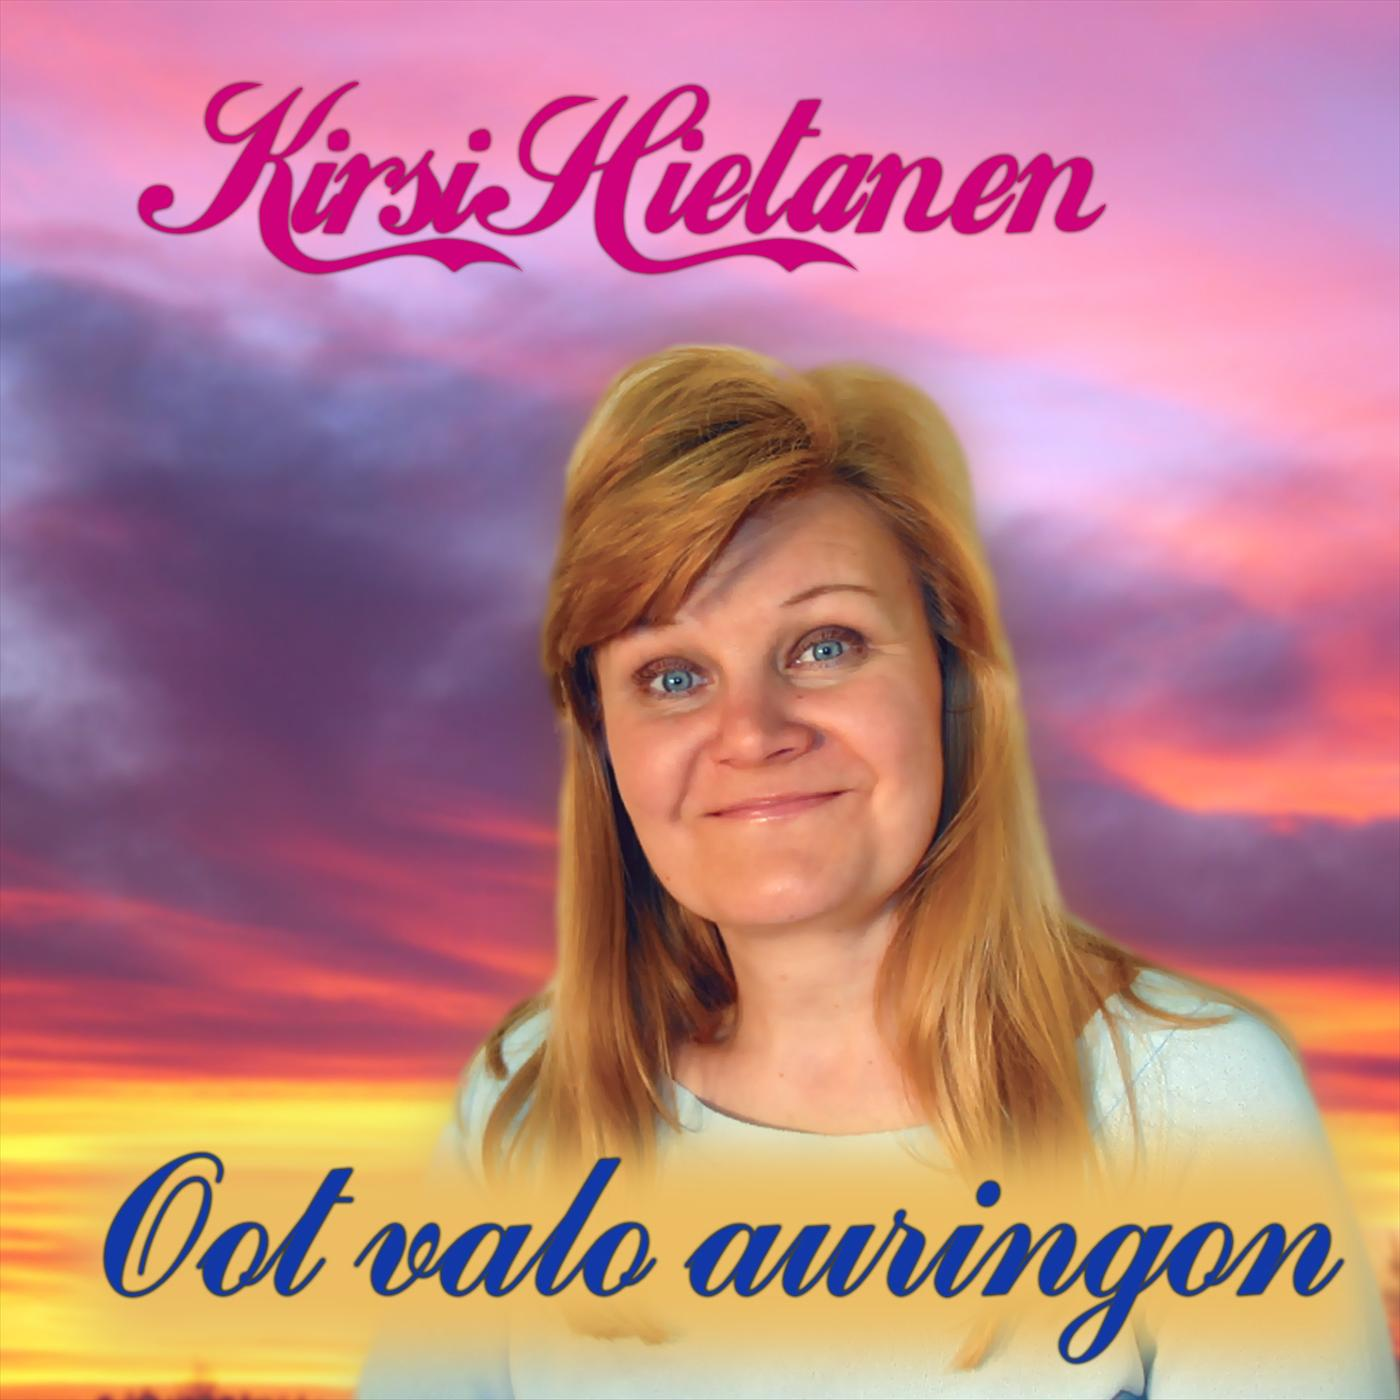 Oot valo auringon